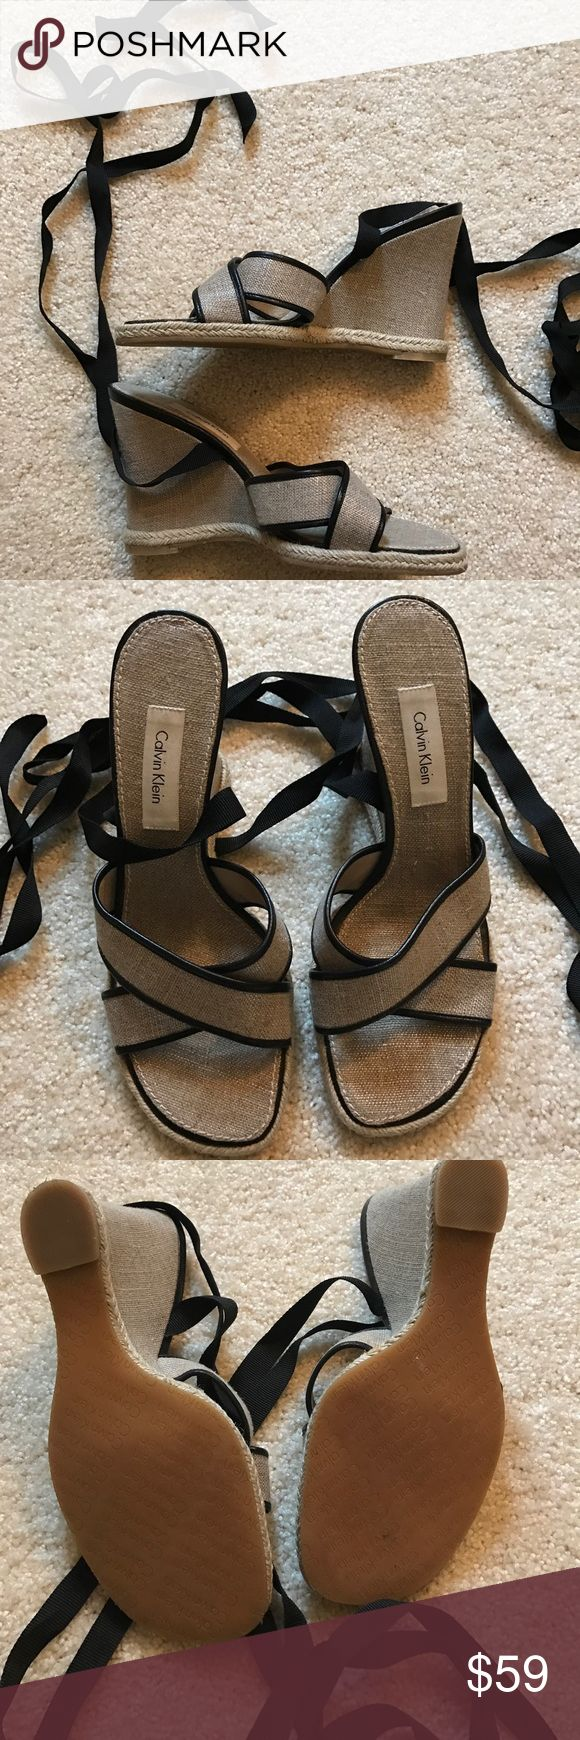 Calvin Klein sandal wedges Calvin Klein wedges. Lace up ankle ribbon. Taupe/Gold with black ribbon. Calvin Klein Shoes Wedges